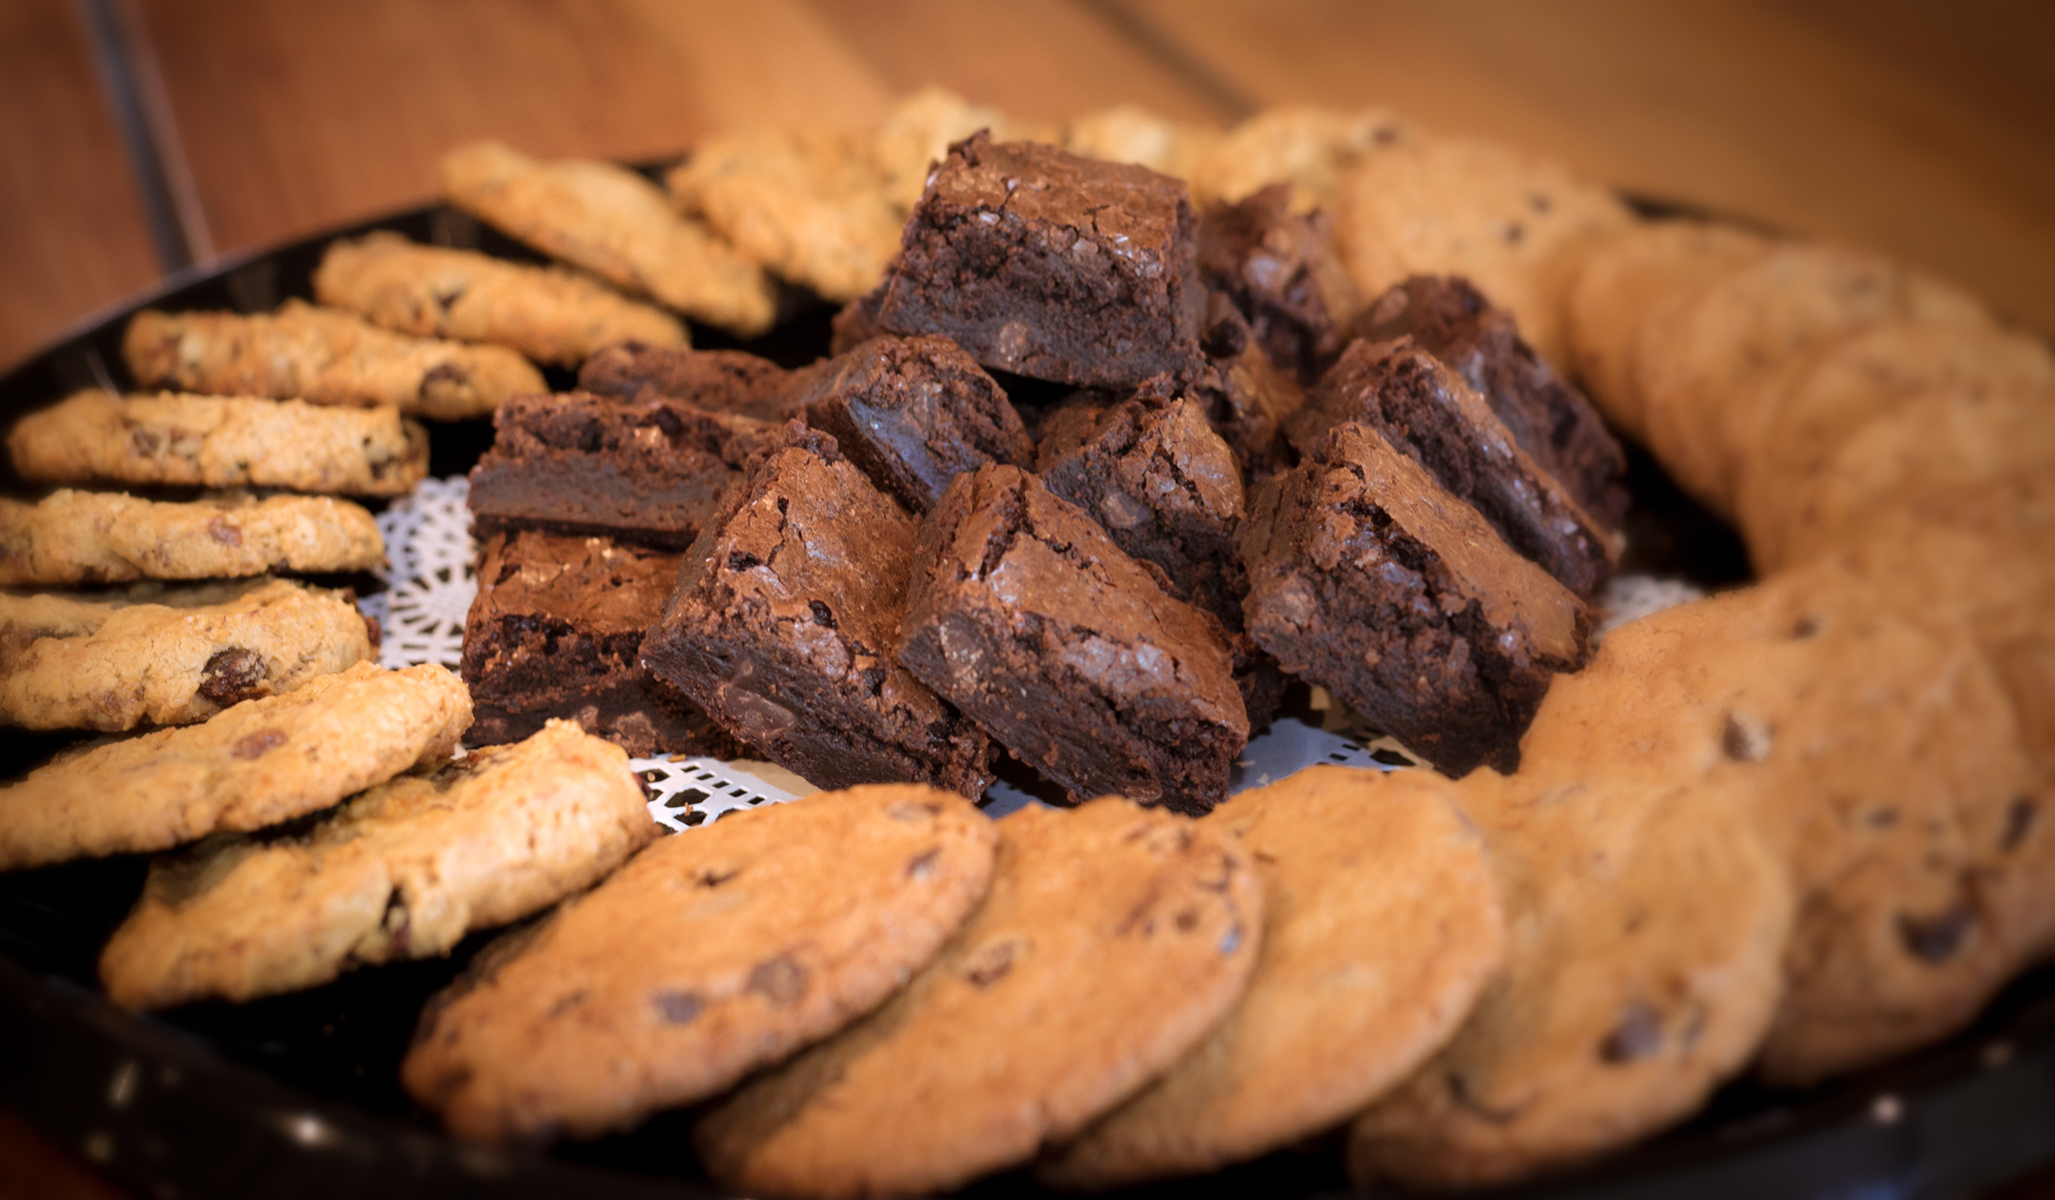 Chocolate Chip Cookies and Brownies